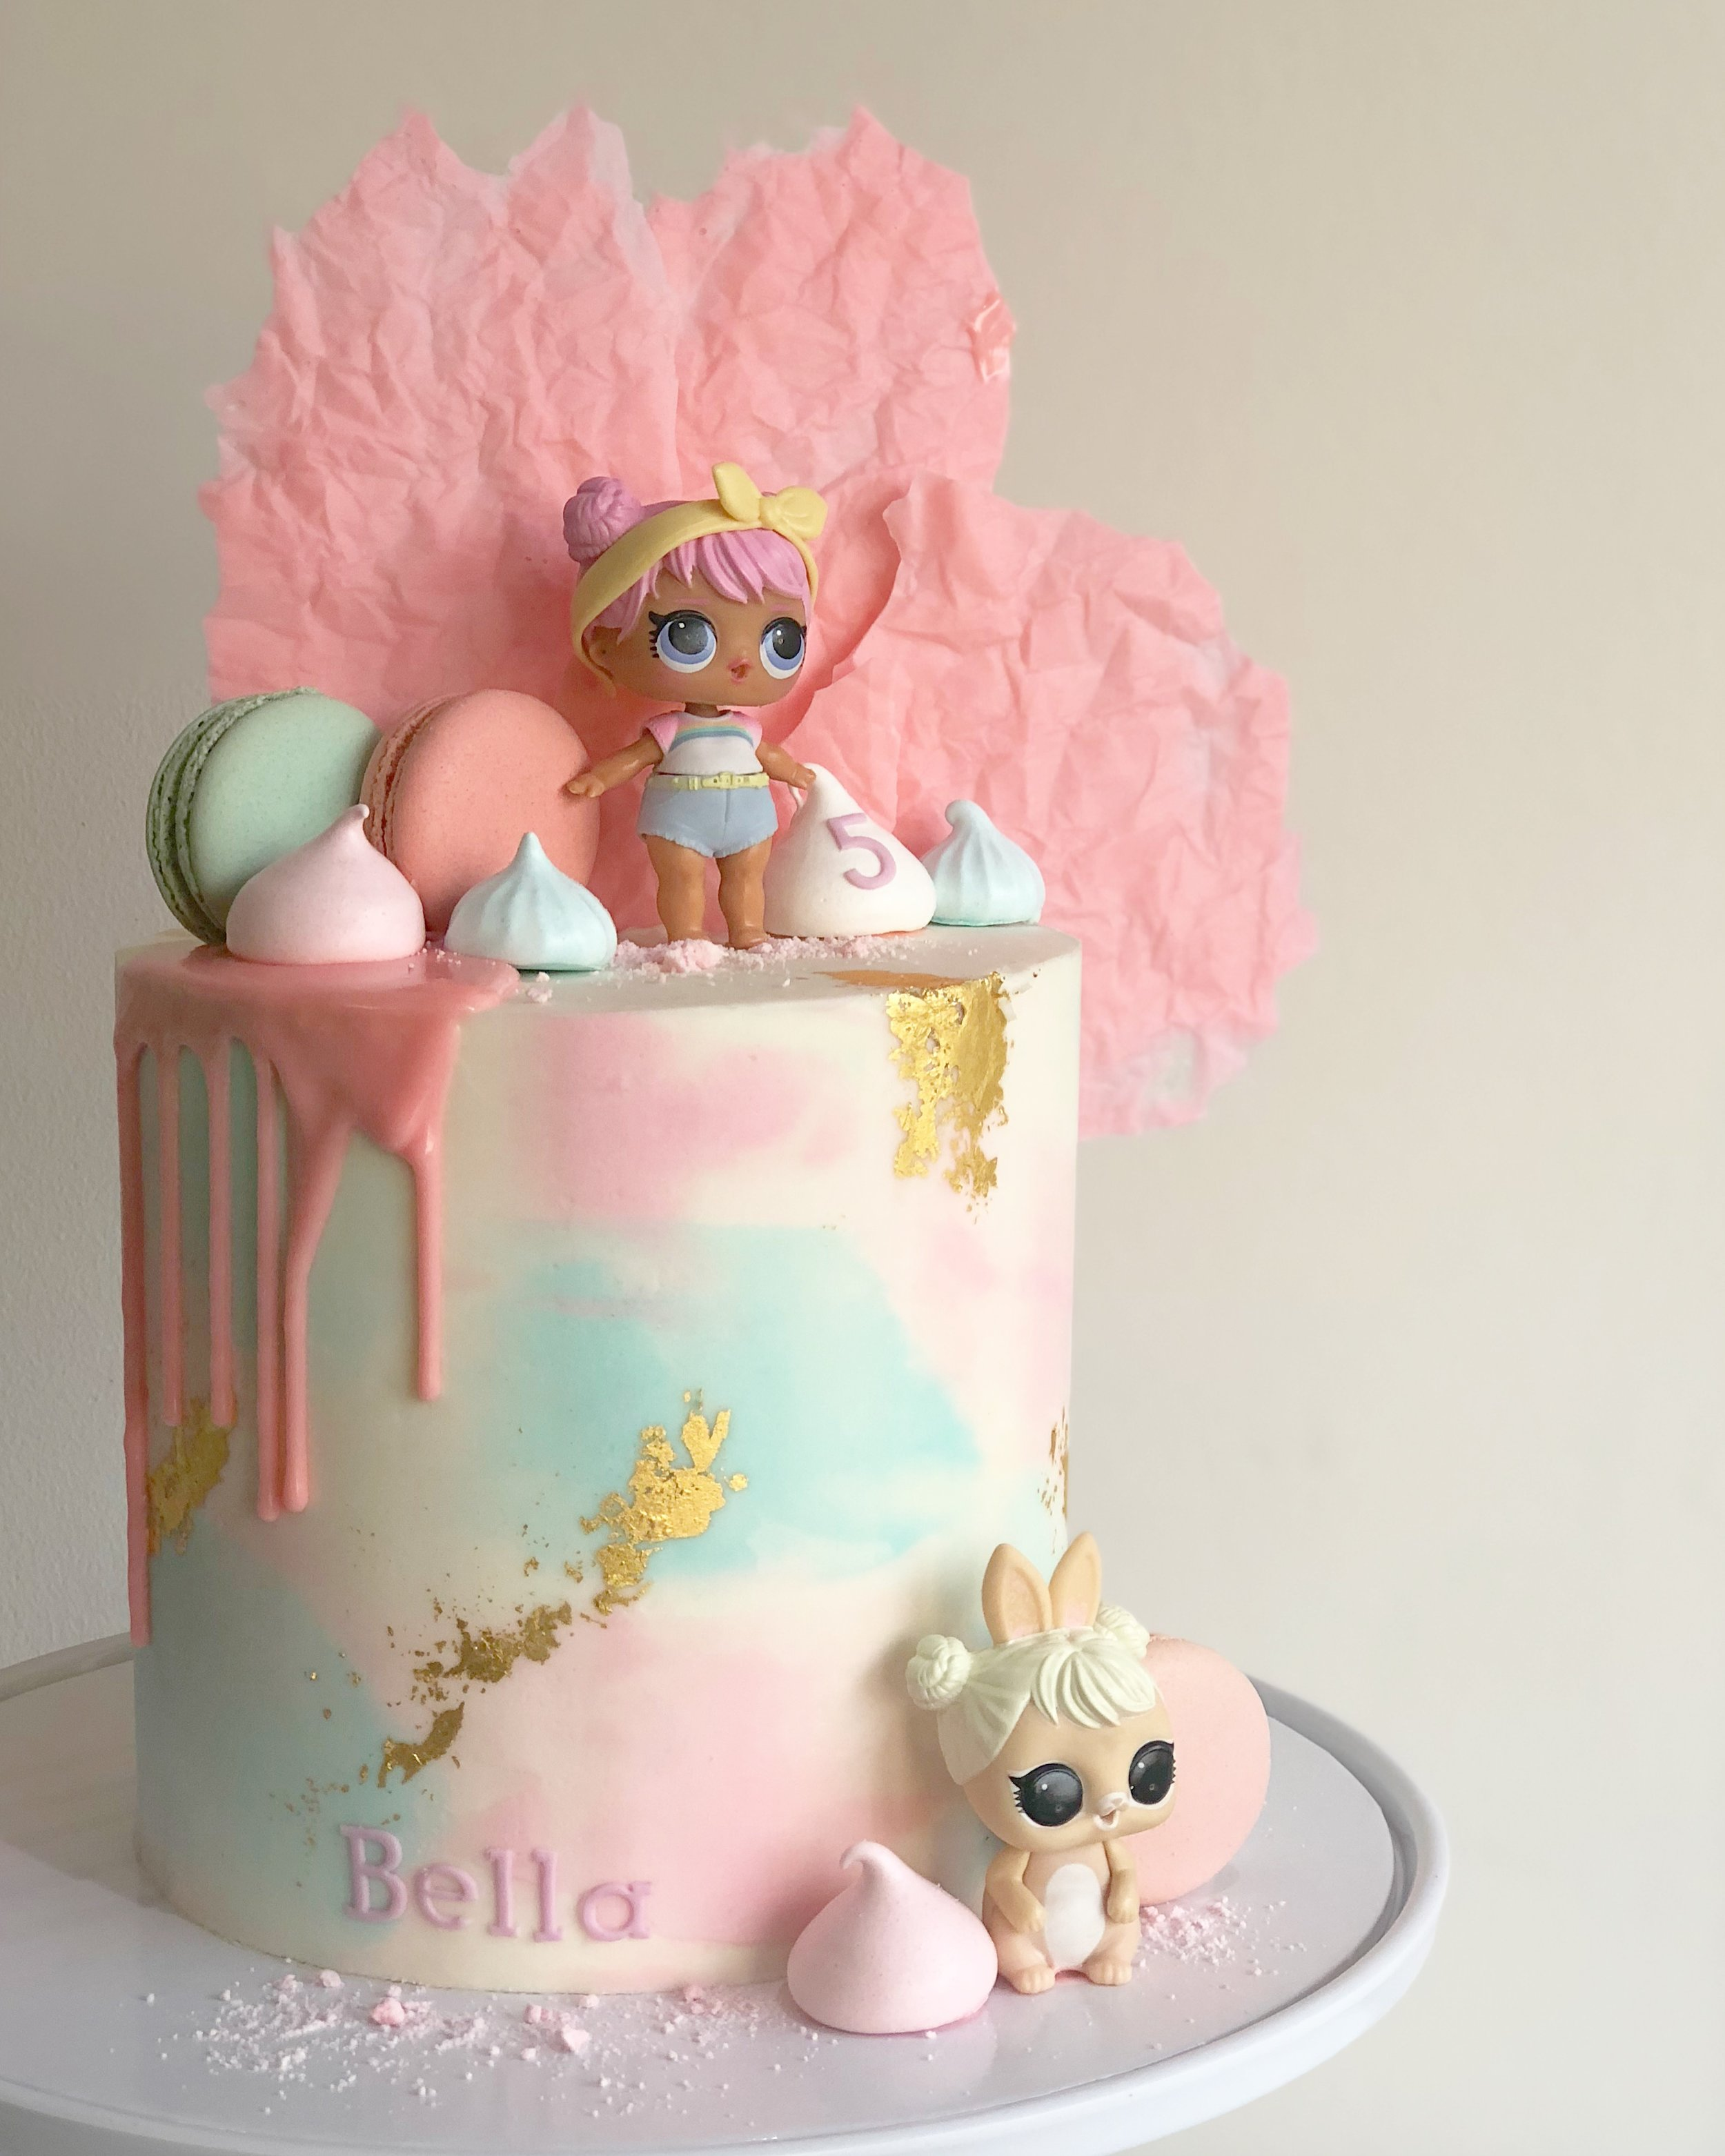 Bella LOL Doll Cake \u2014 Burnt Butter Cakes